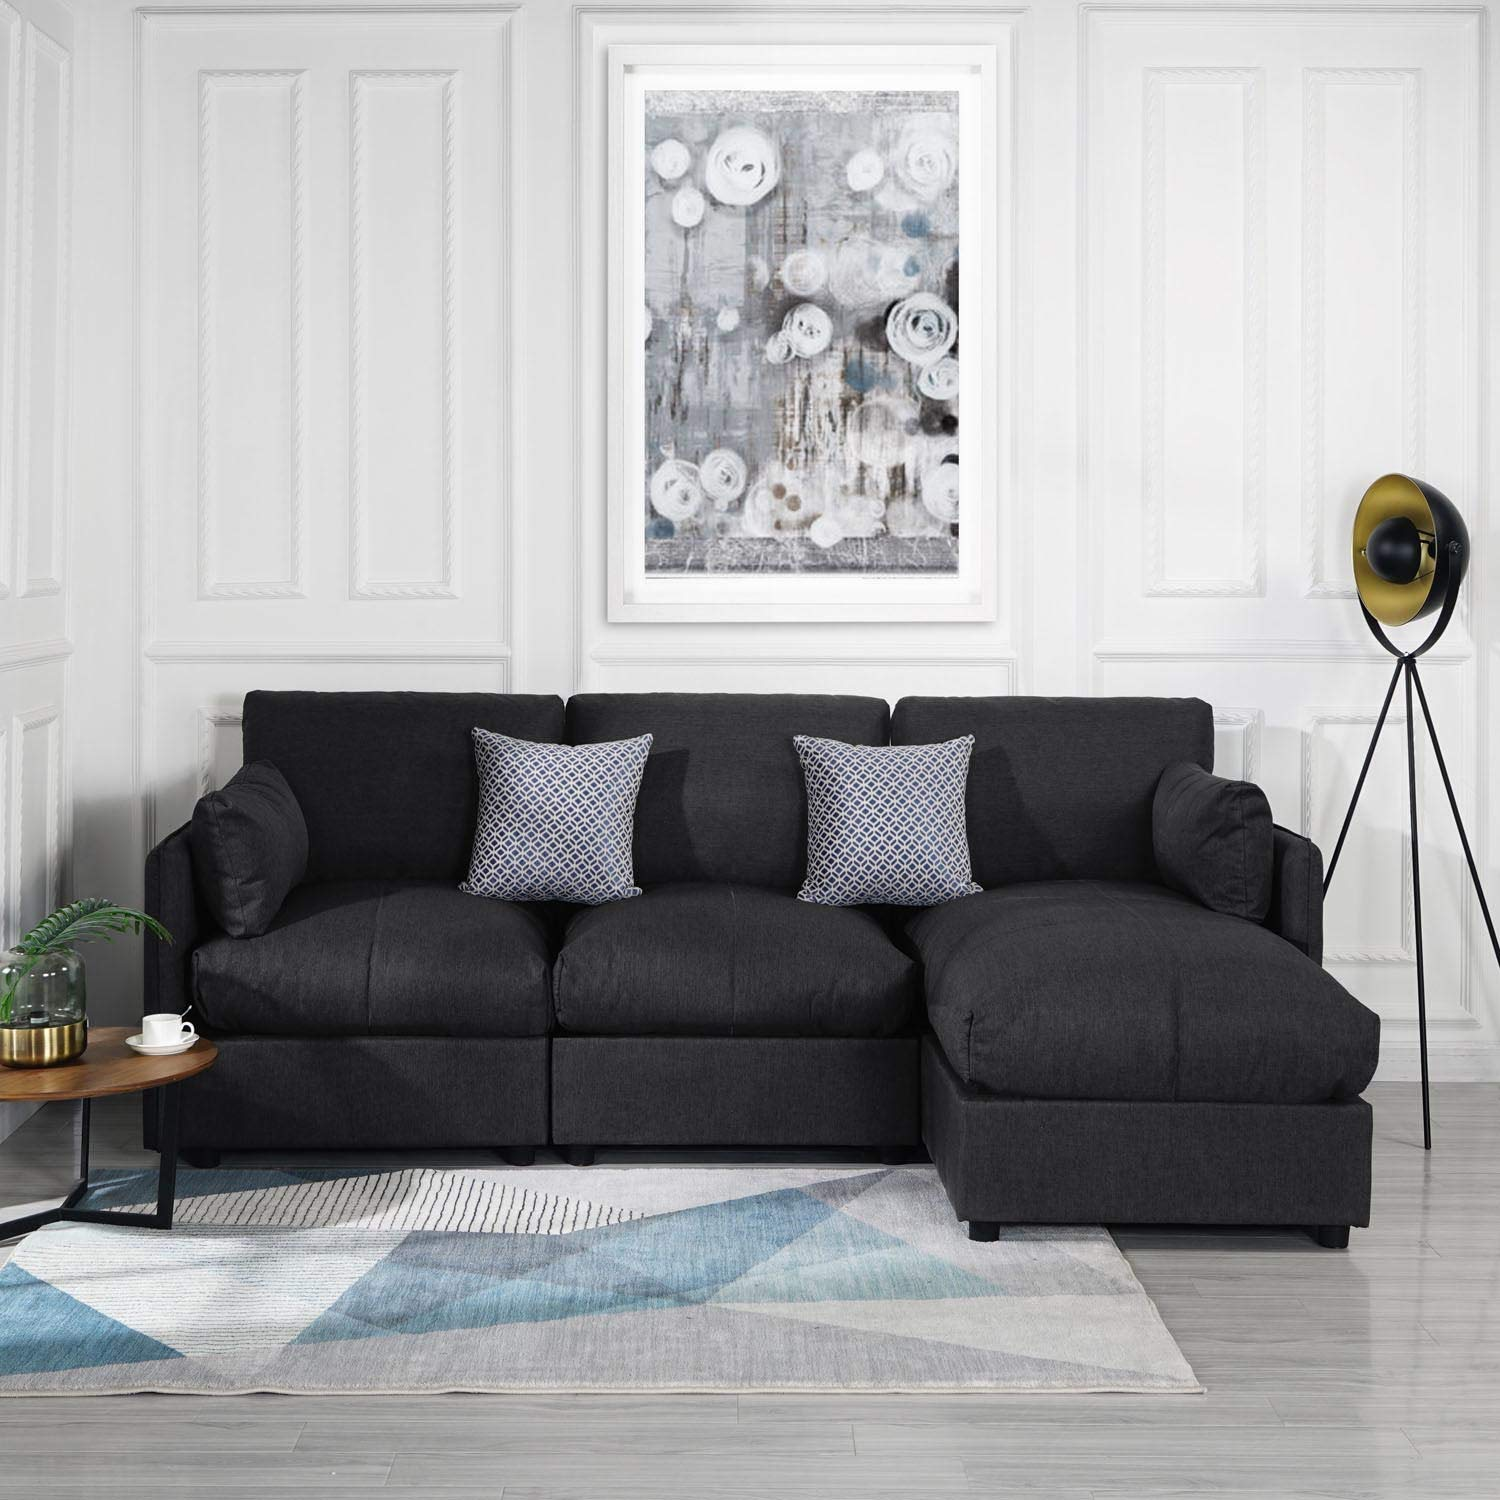 Grey Upholstered Linen Sectional Sofa Couch Modern L Shape Sectional,  Sectional Sofas and Couches, Sofa Couch with Chaise, for Small/Large Living  ...